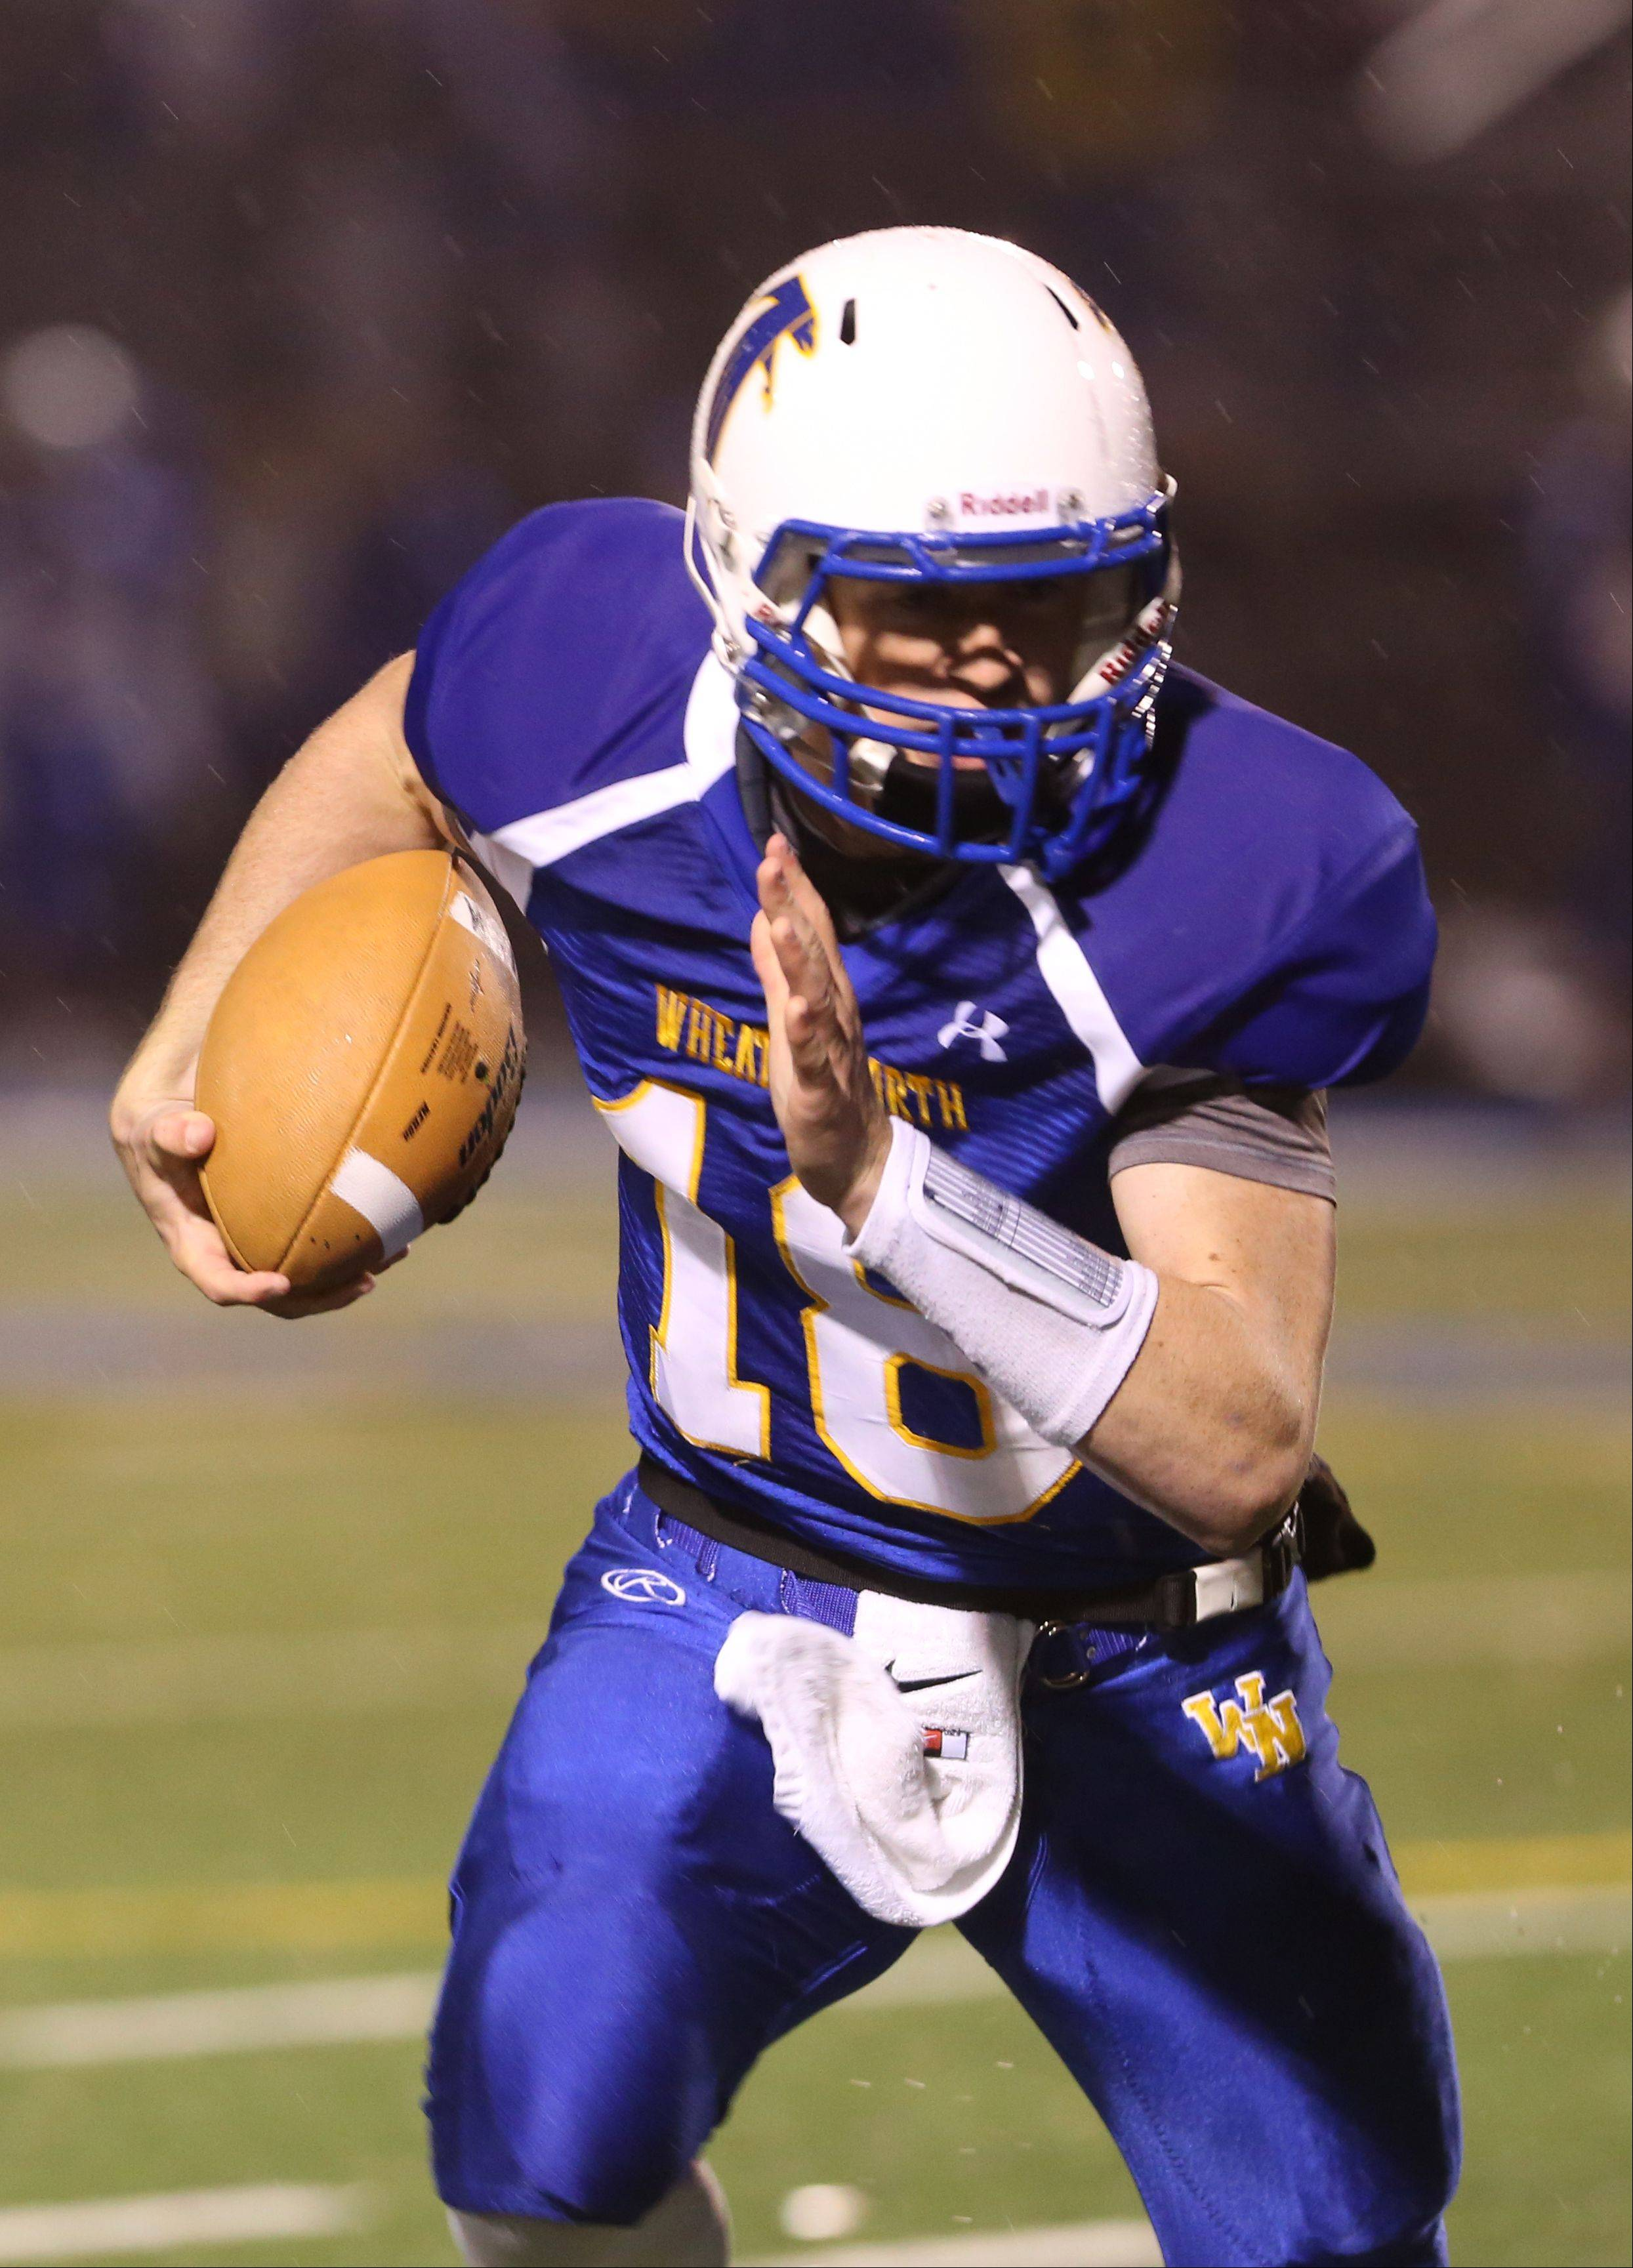 Wheaton North quarterback Clayton Thorson looks for running room against Glenbrook North.